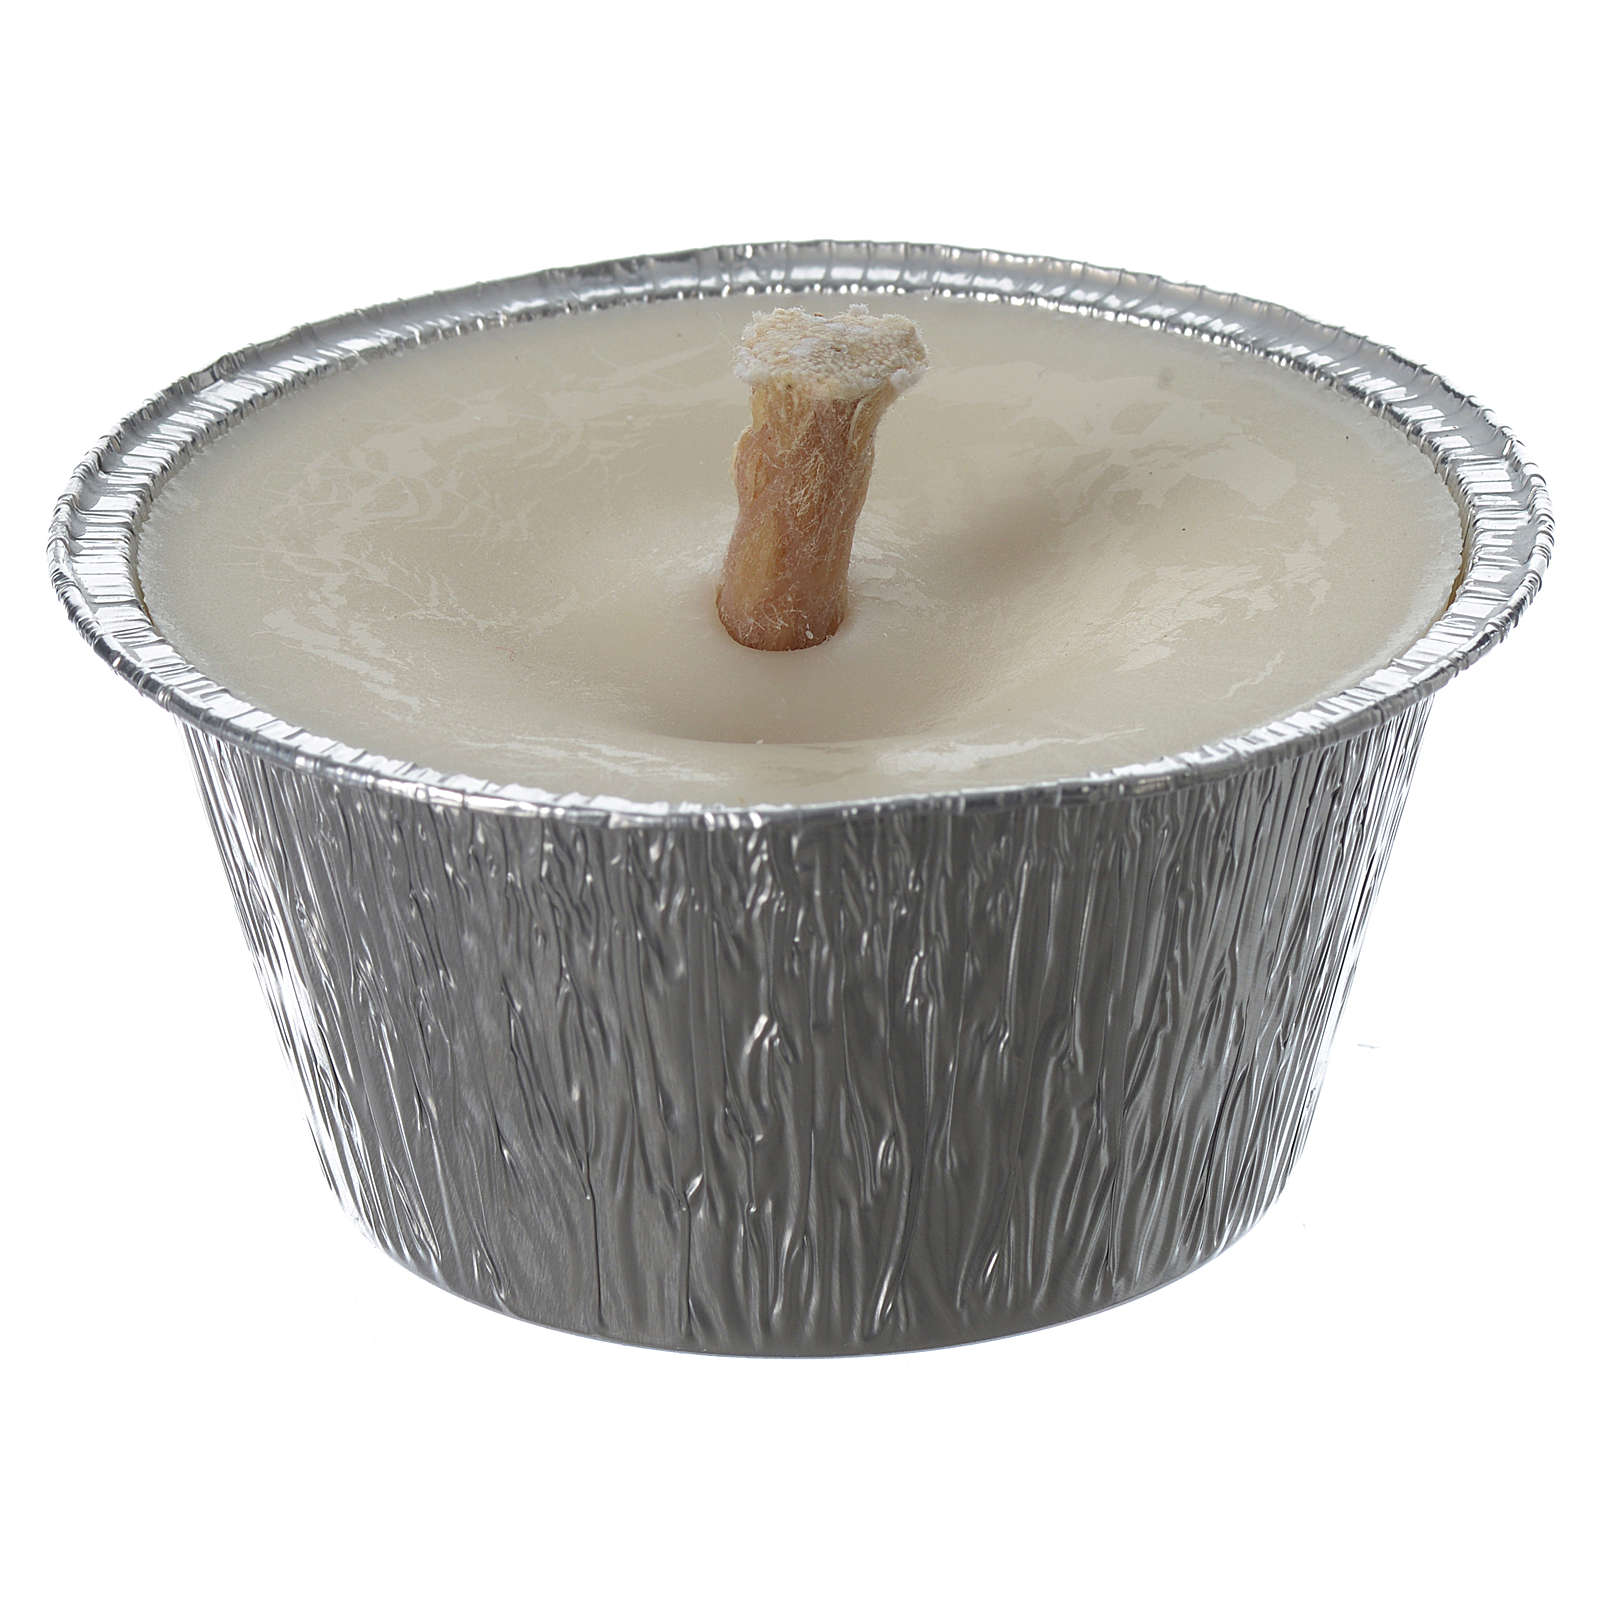 Small white candle with holder in aluminium foil 3